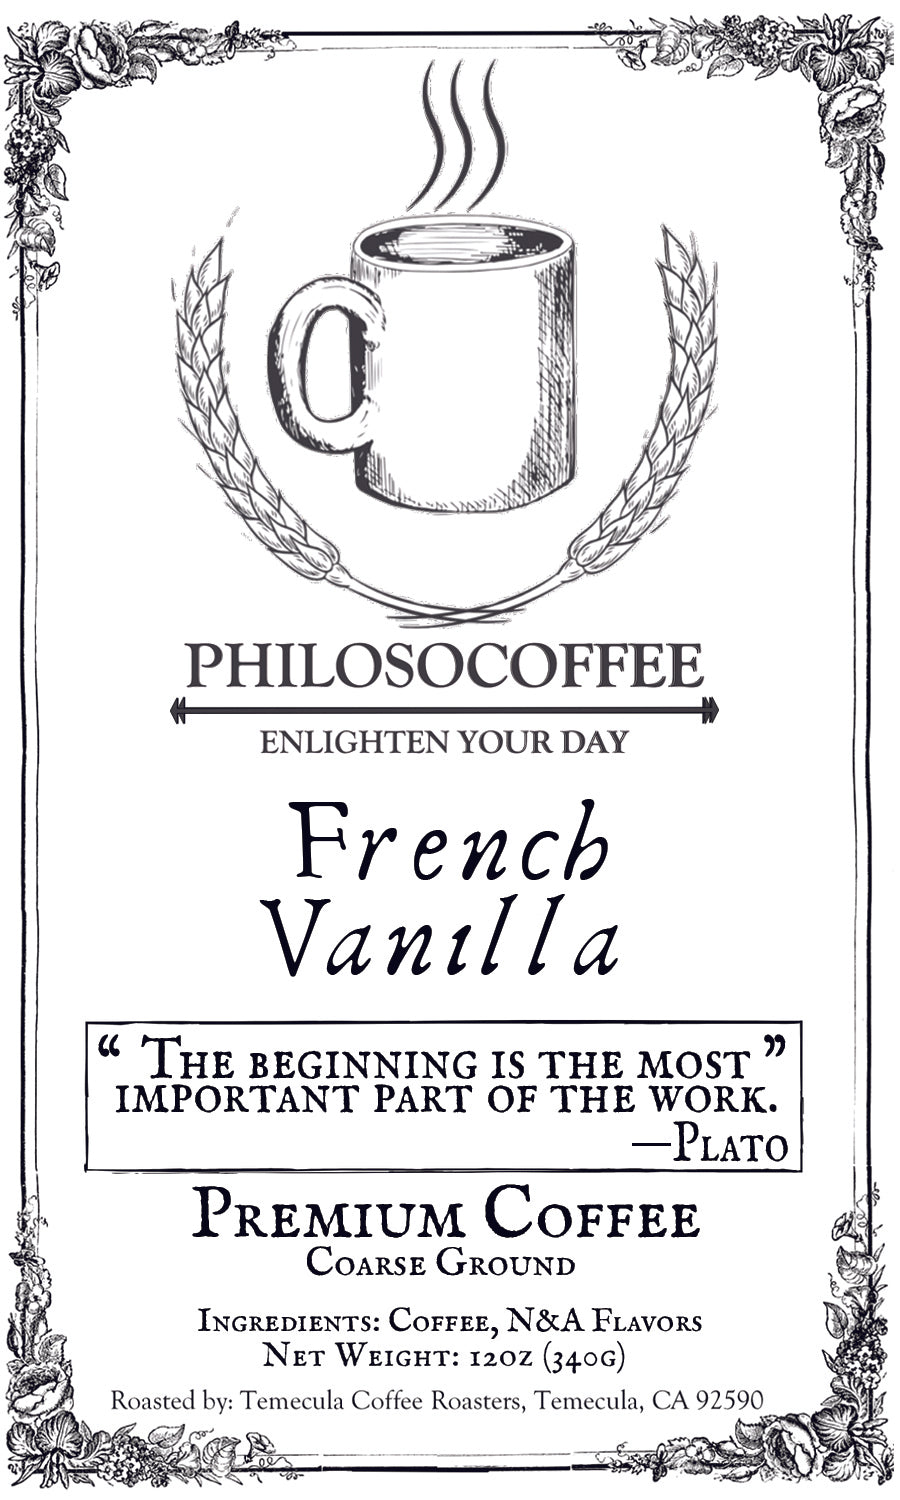 French Vanilla - PHILOSOCOFFEE